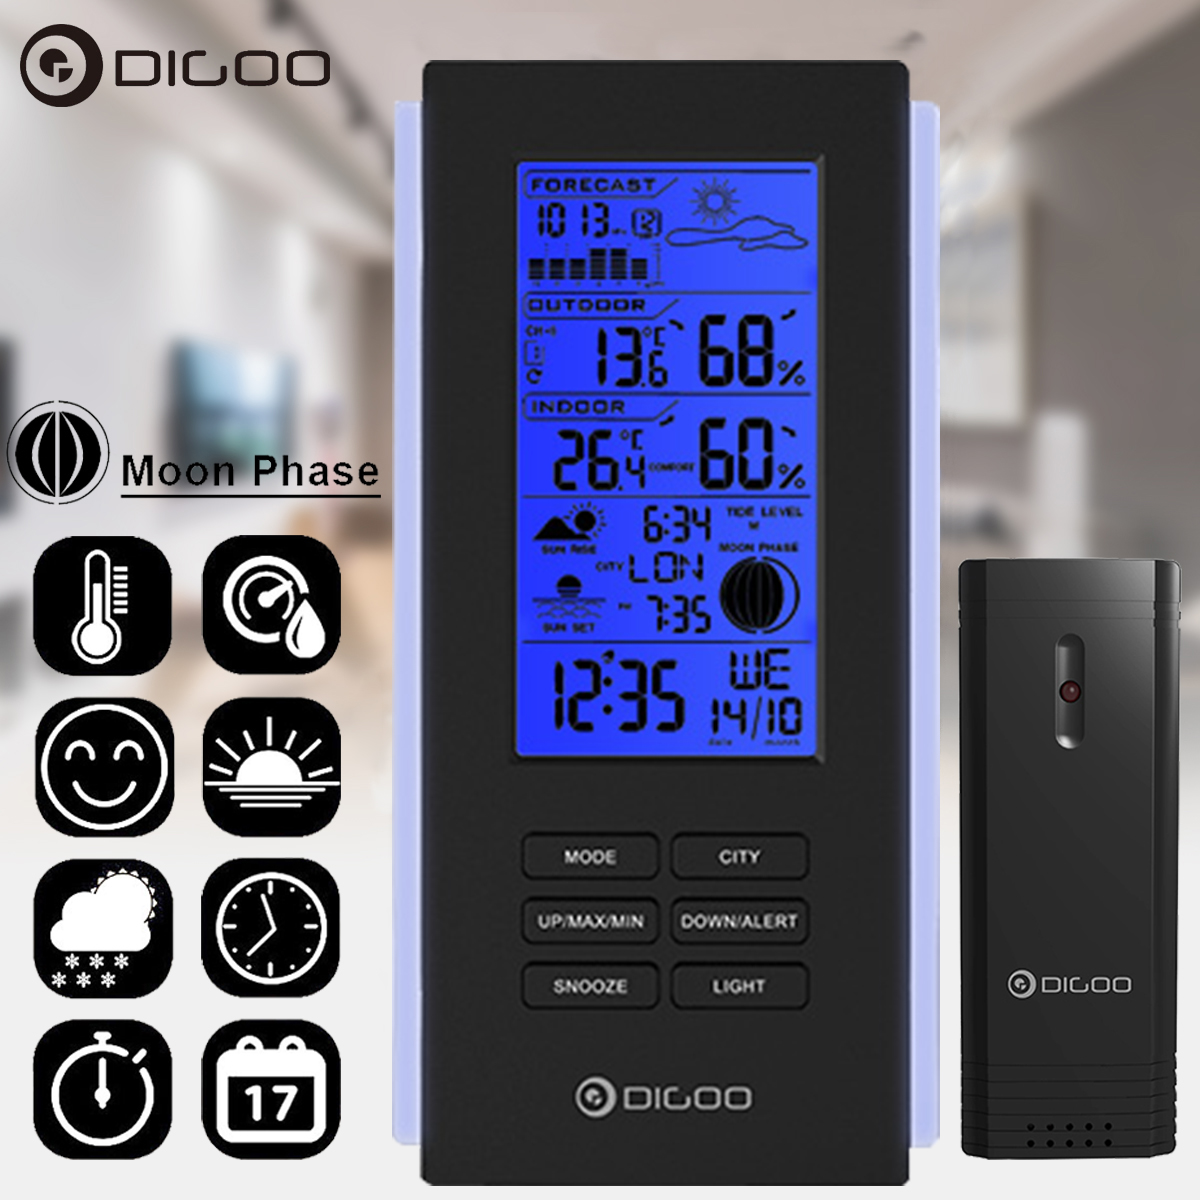 Digoo Wireless Weather Forecast Station Calendar Snooze Alarm Clock Indoor Outdoor Thermometer Hydrometer... by